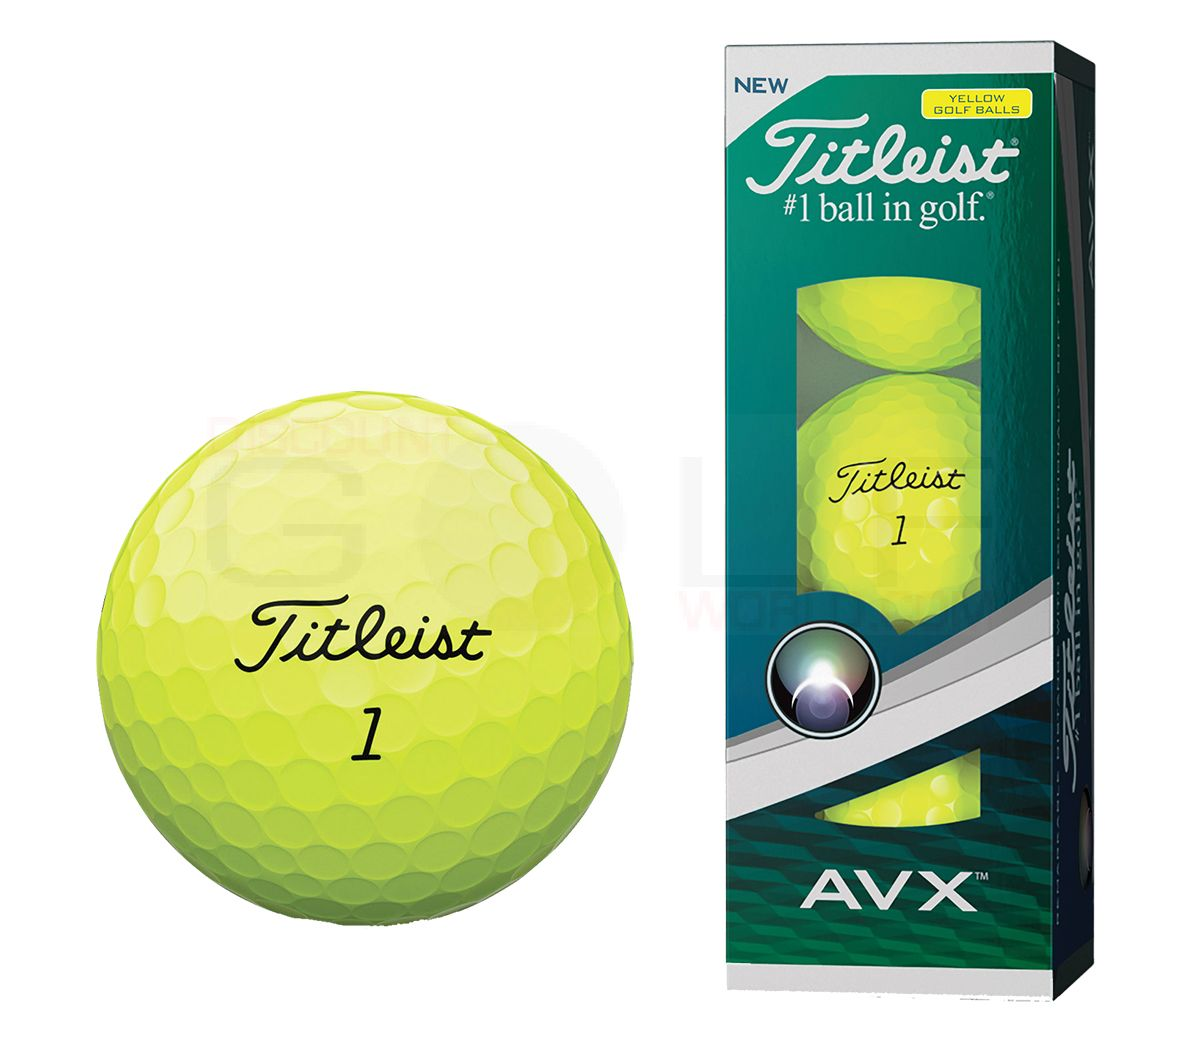 https://linkinggolf.com/bong-golf-titleist-avx-yellow